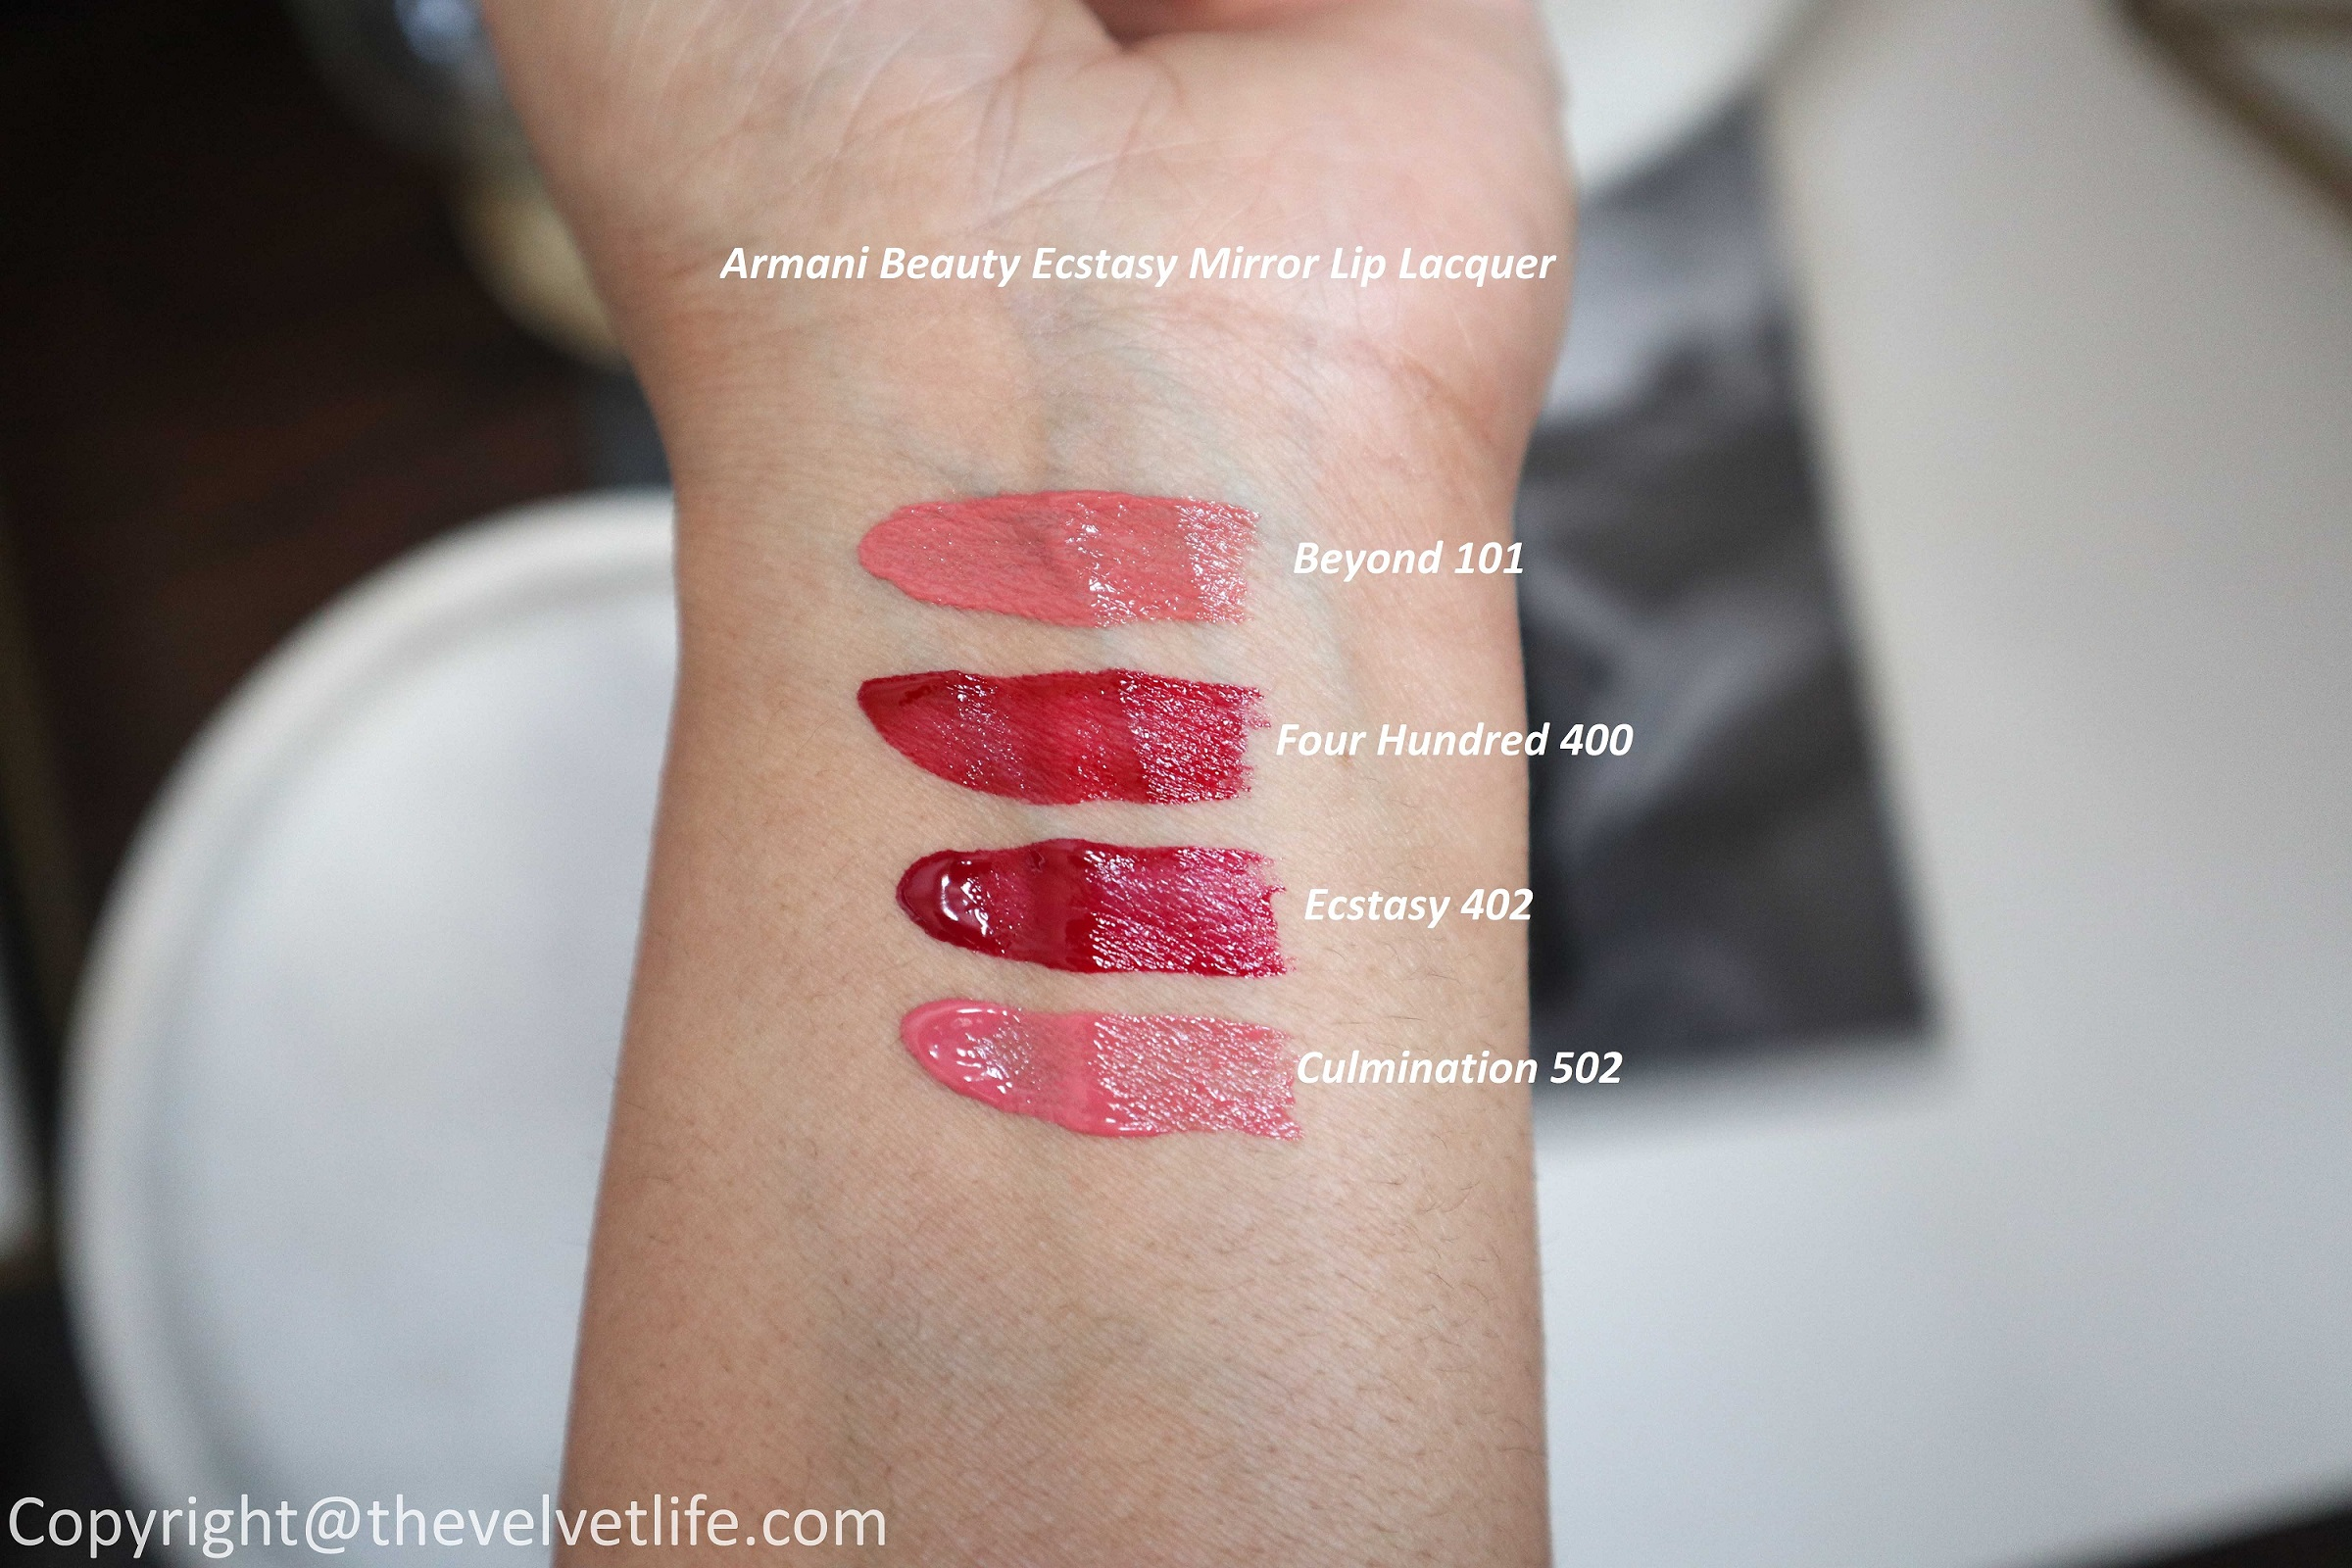 New Armani Beauty Ecstasy Mirror Lip Lacquer review and swatches of shades 101, 400, 402, and 502